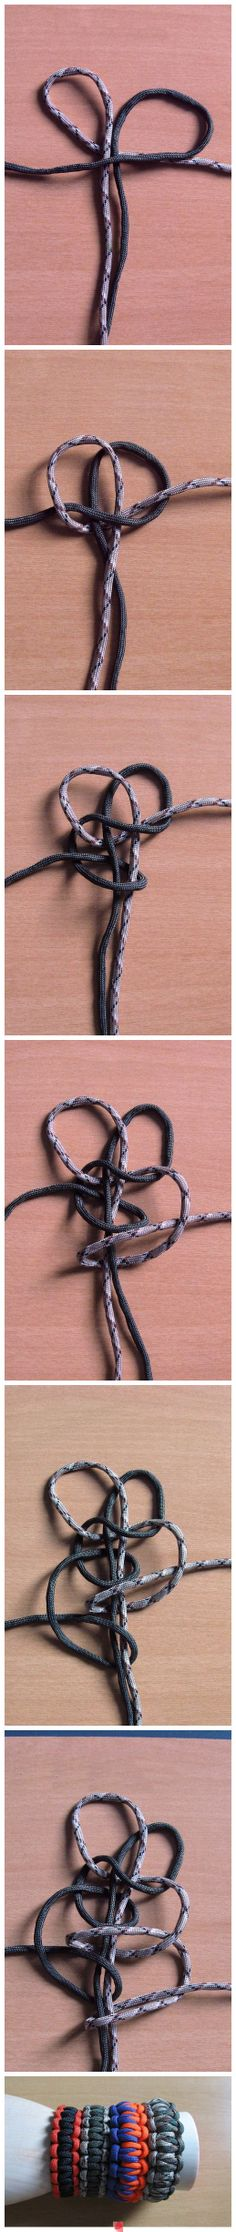 paracord knotting